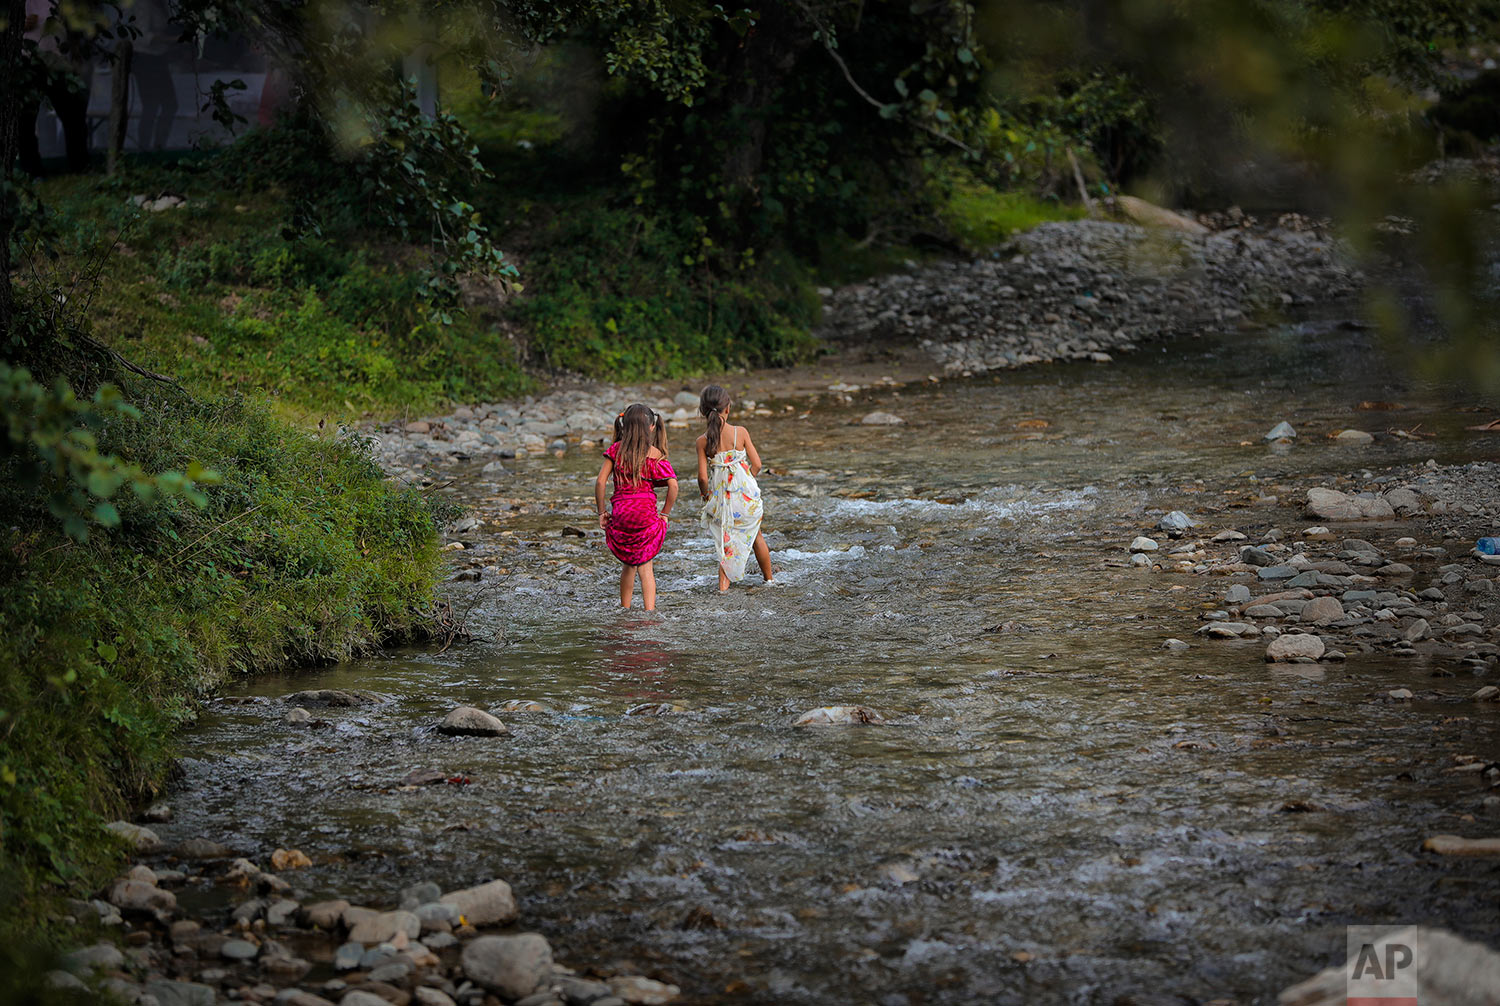 In this Friday, Sept. 8, 2017 photograph, Roma girls walk in a river in Costesti, Romania. (AP Photo/Vadim Ghirda)